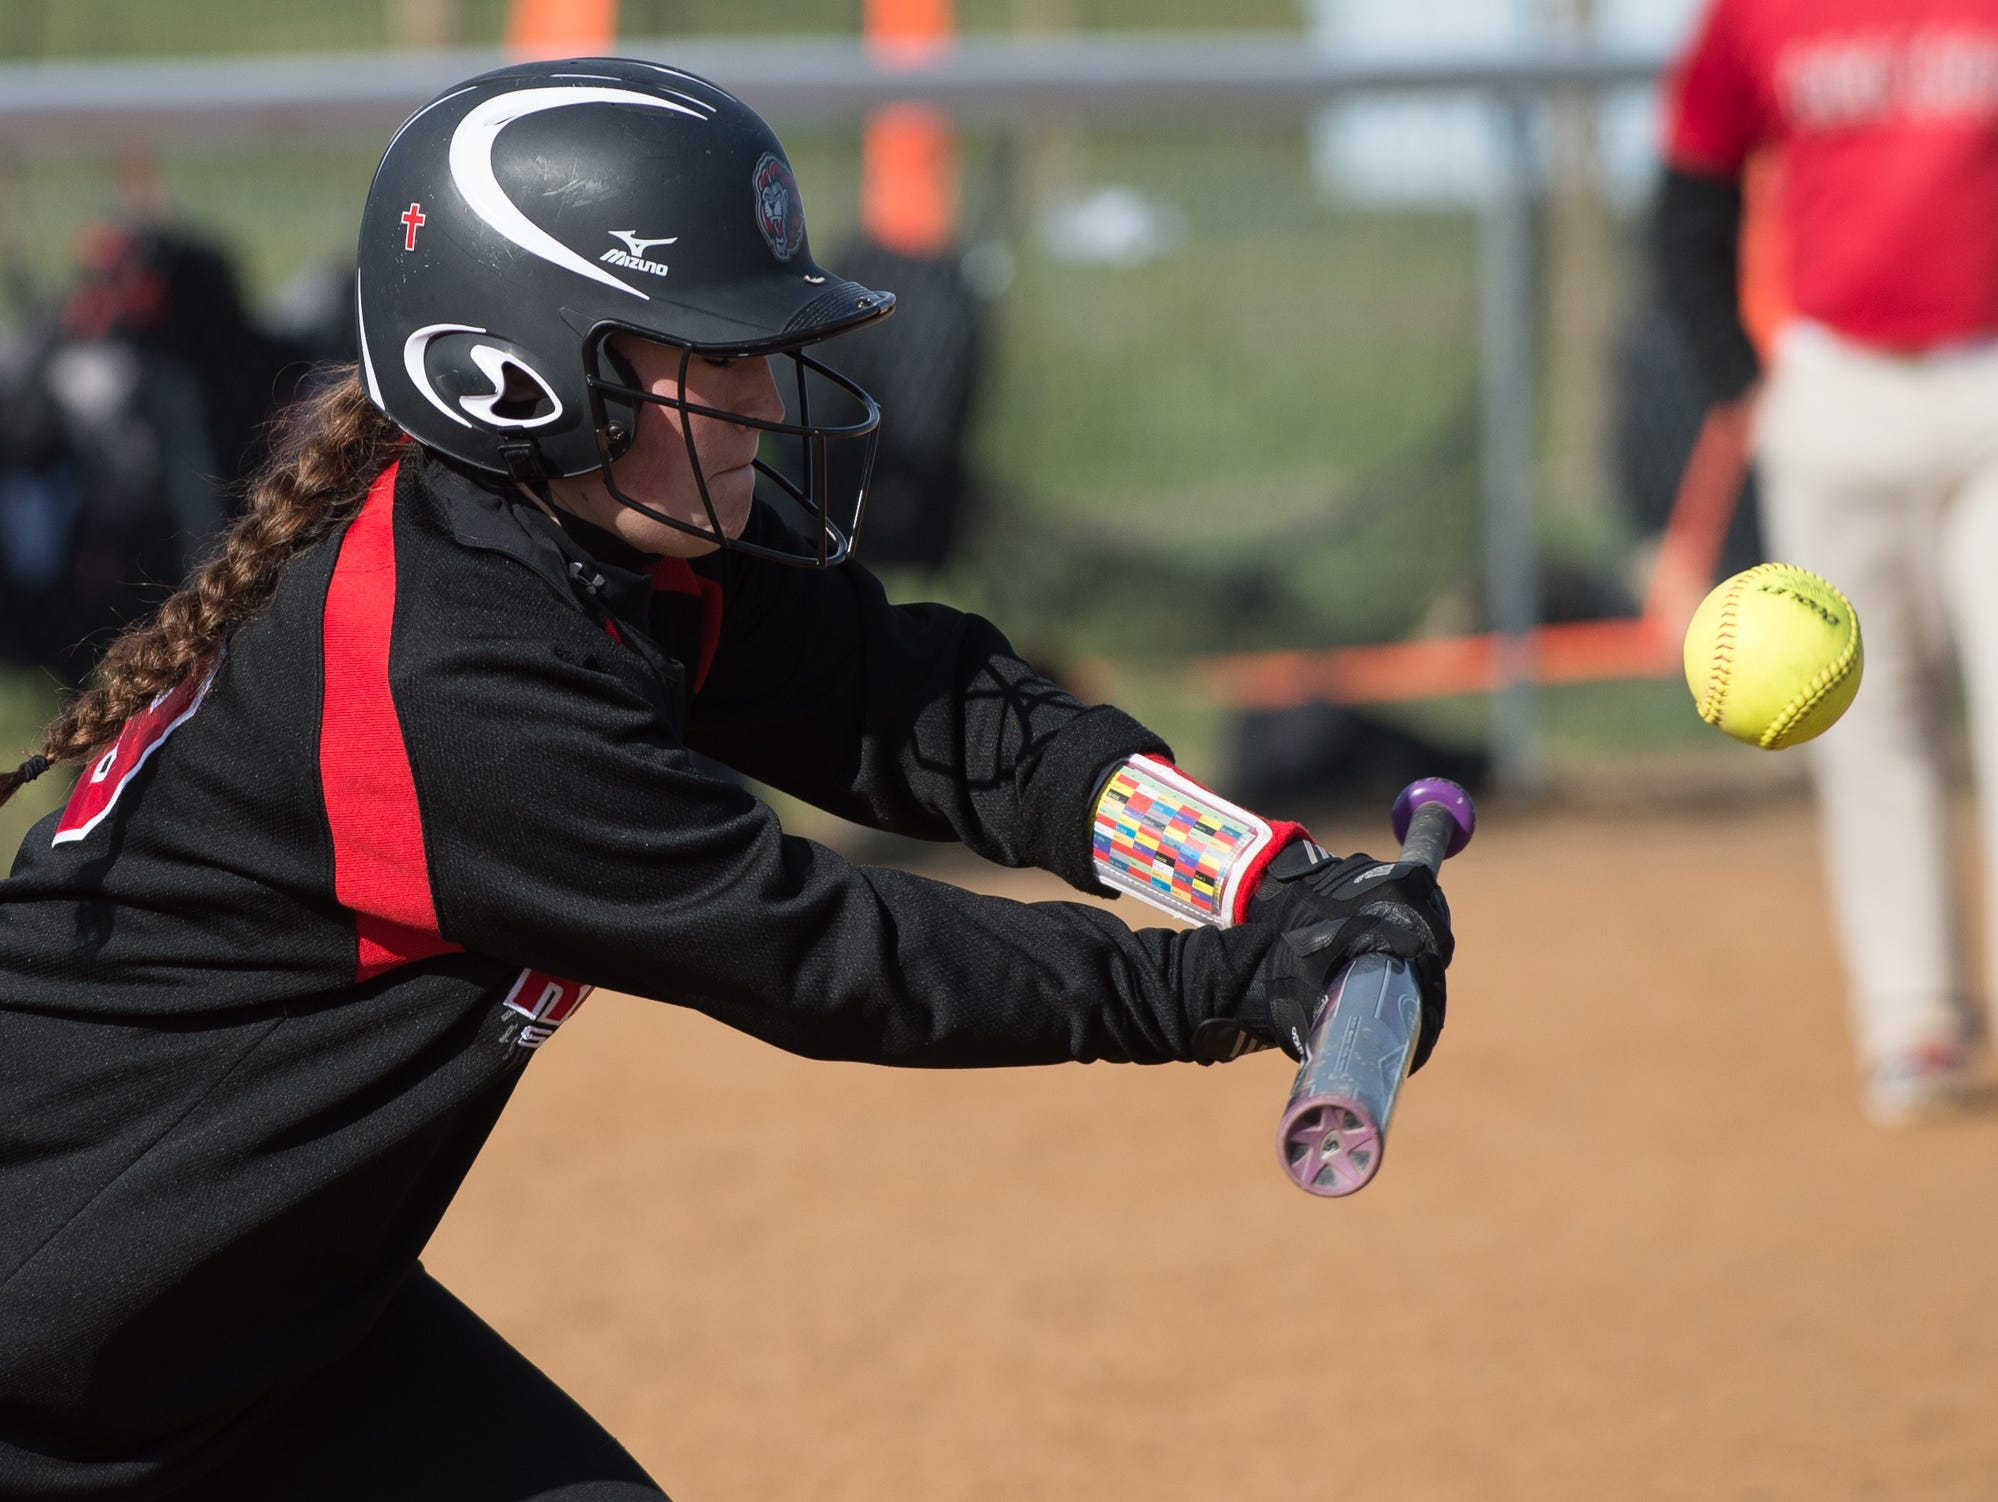 Red Lion's Colleen McAllister (19) bunts the ball in their game against Lake Forest on Friday.